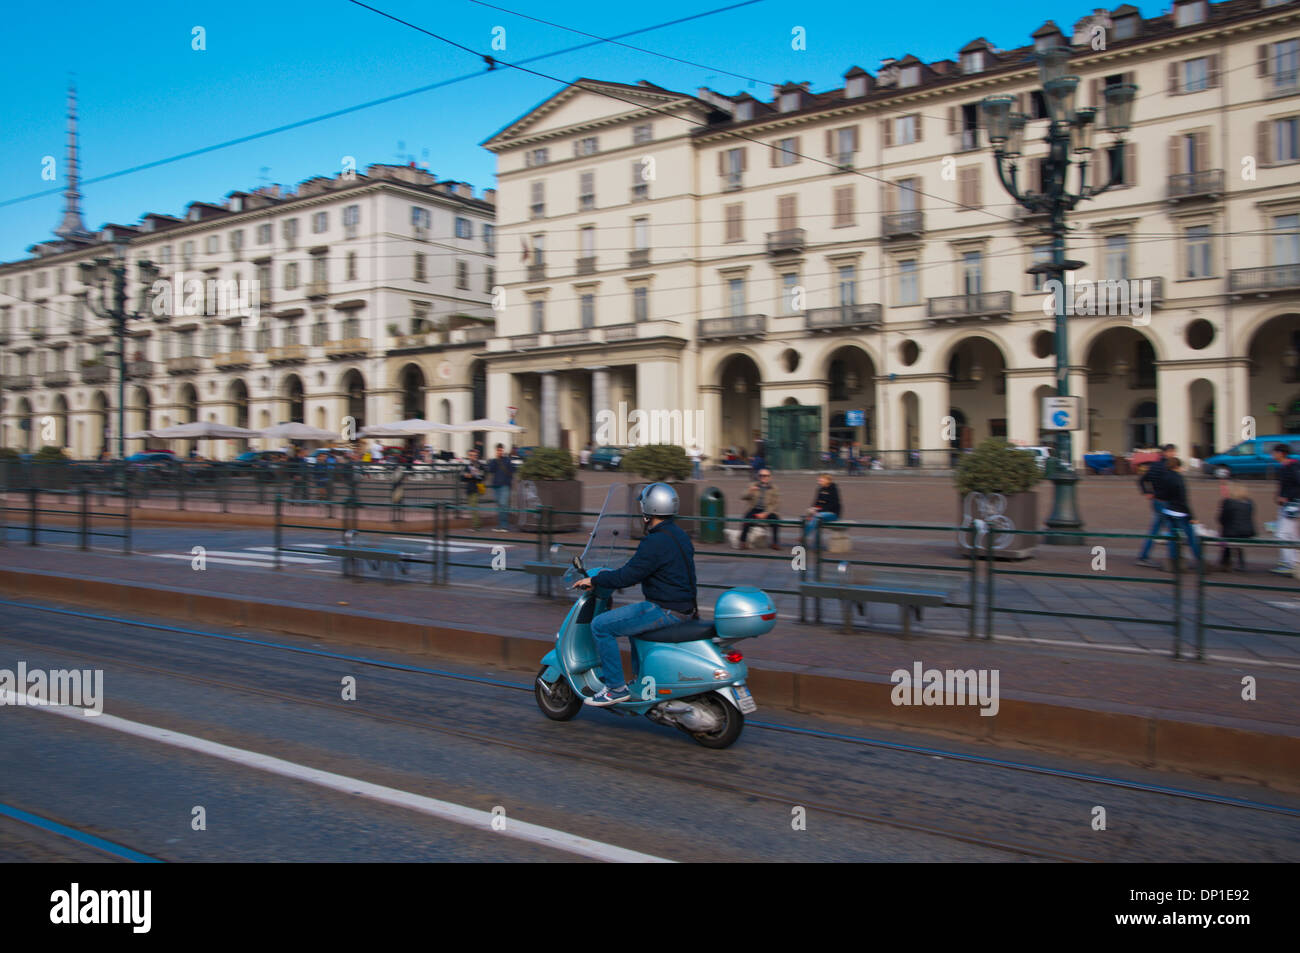 Panning motion shot of scooter at Piazza Vittorio Veneto square Turin city Piedmont region northern Italy Europe - Stock Image